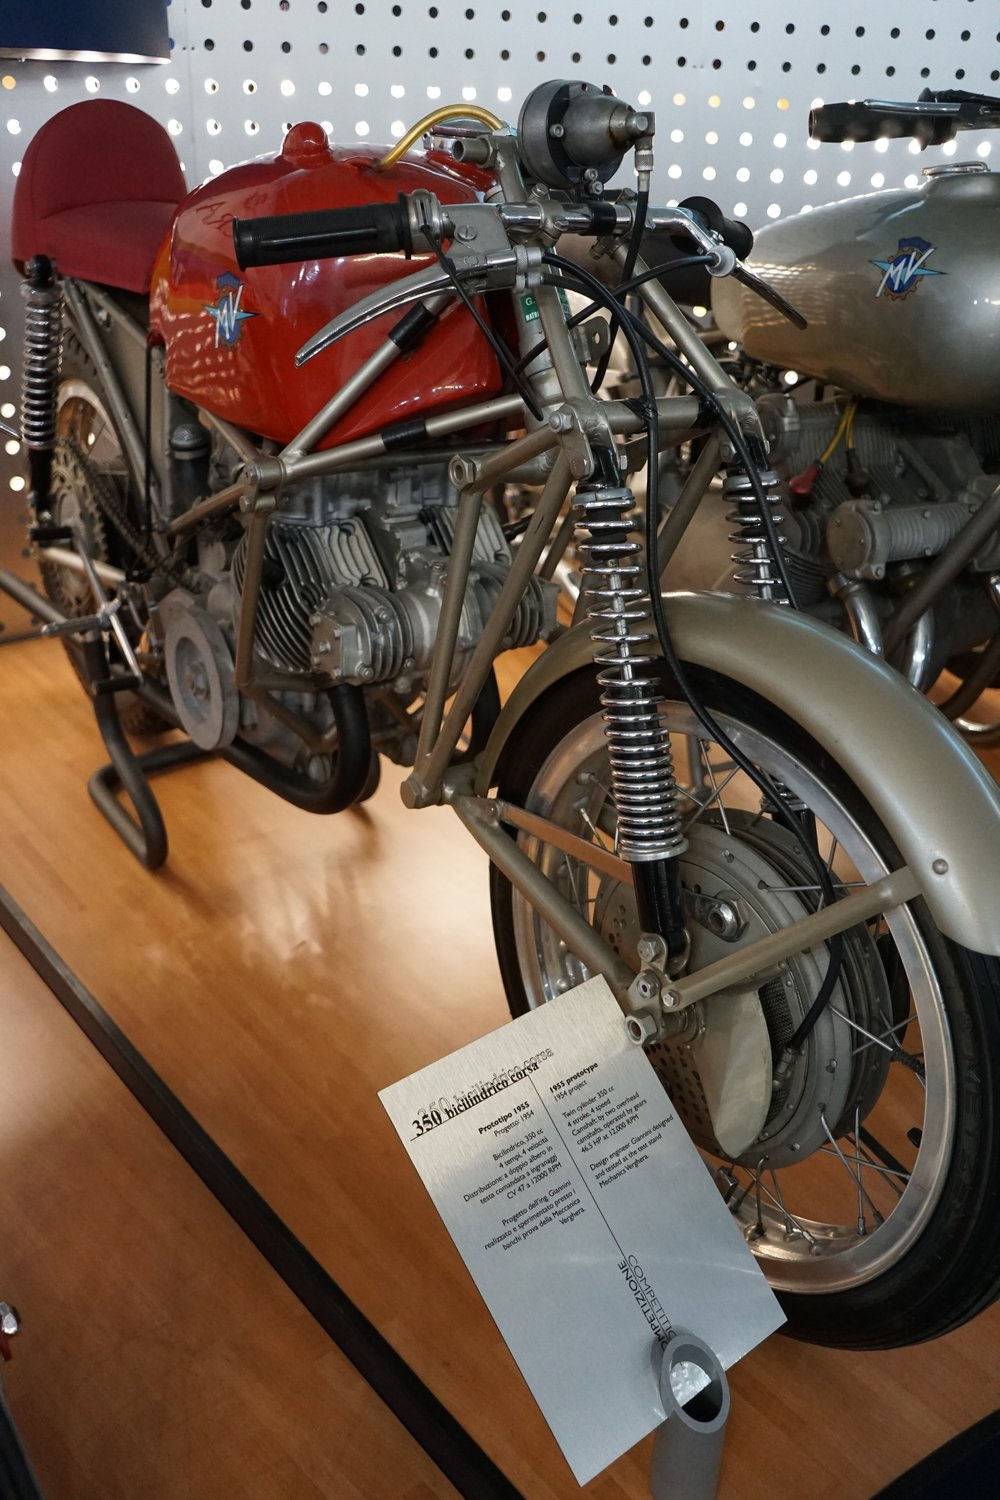 '55 Bicilindrico Corsa Prototype – Fascinating space frame and front suspension. This was a project by an MV engineer named Giannini. The 350cc twin was tested but never raced.